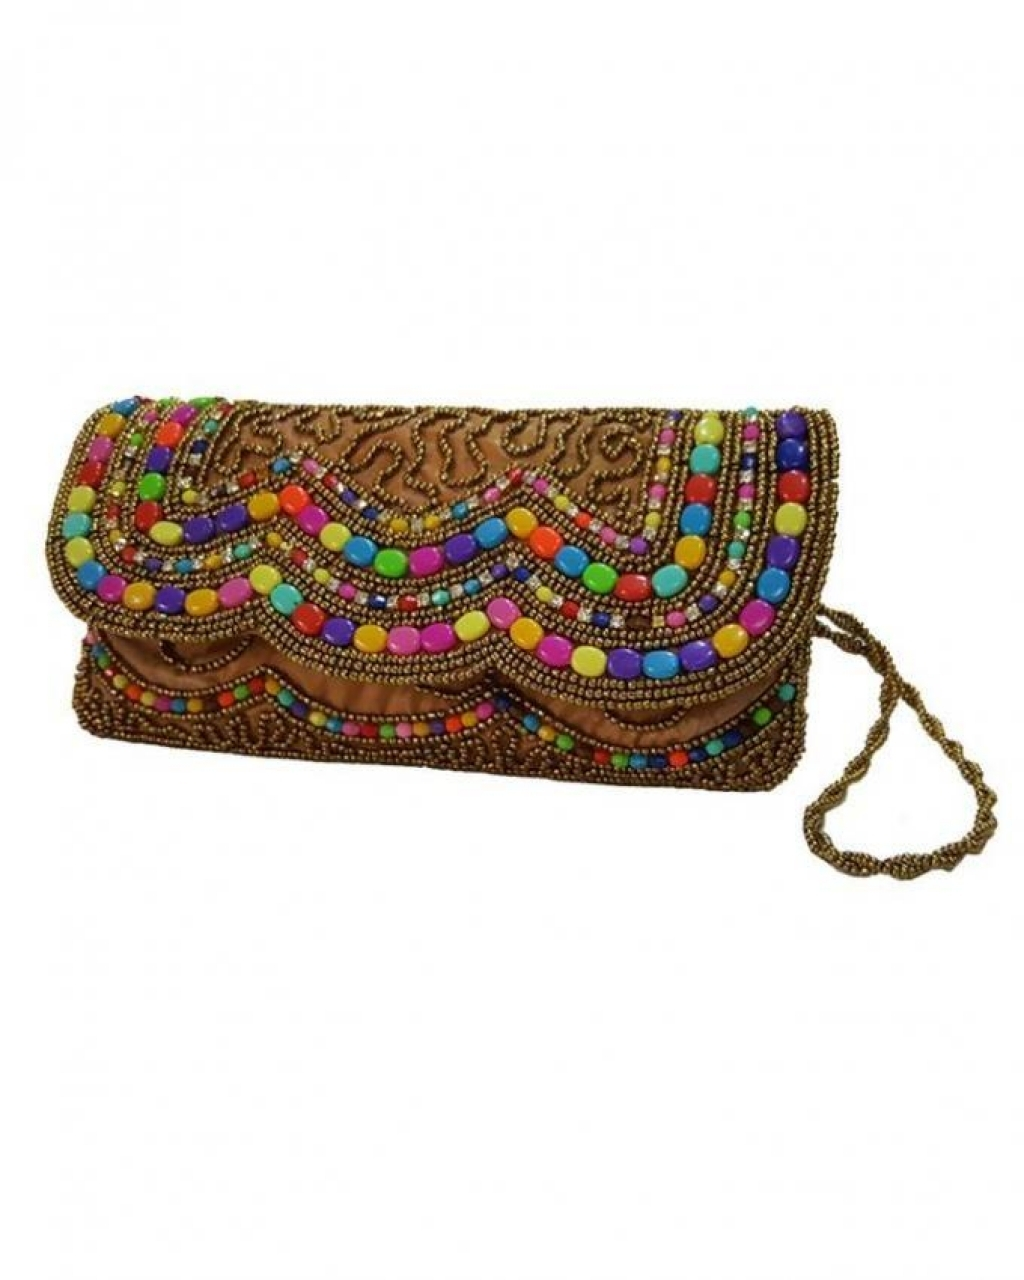 16003466060_clutch-clutch-purse-clutch-bag-hand-clutch-ladies-clutch-women-Handbags-online-shopping-in-Pakistan-01.jpg